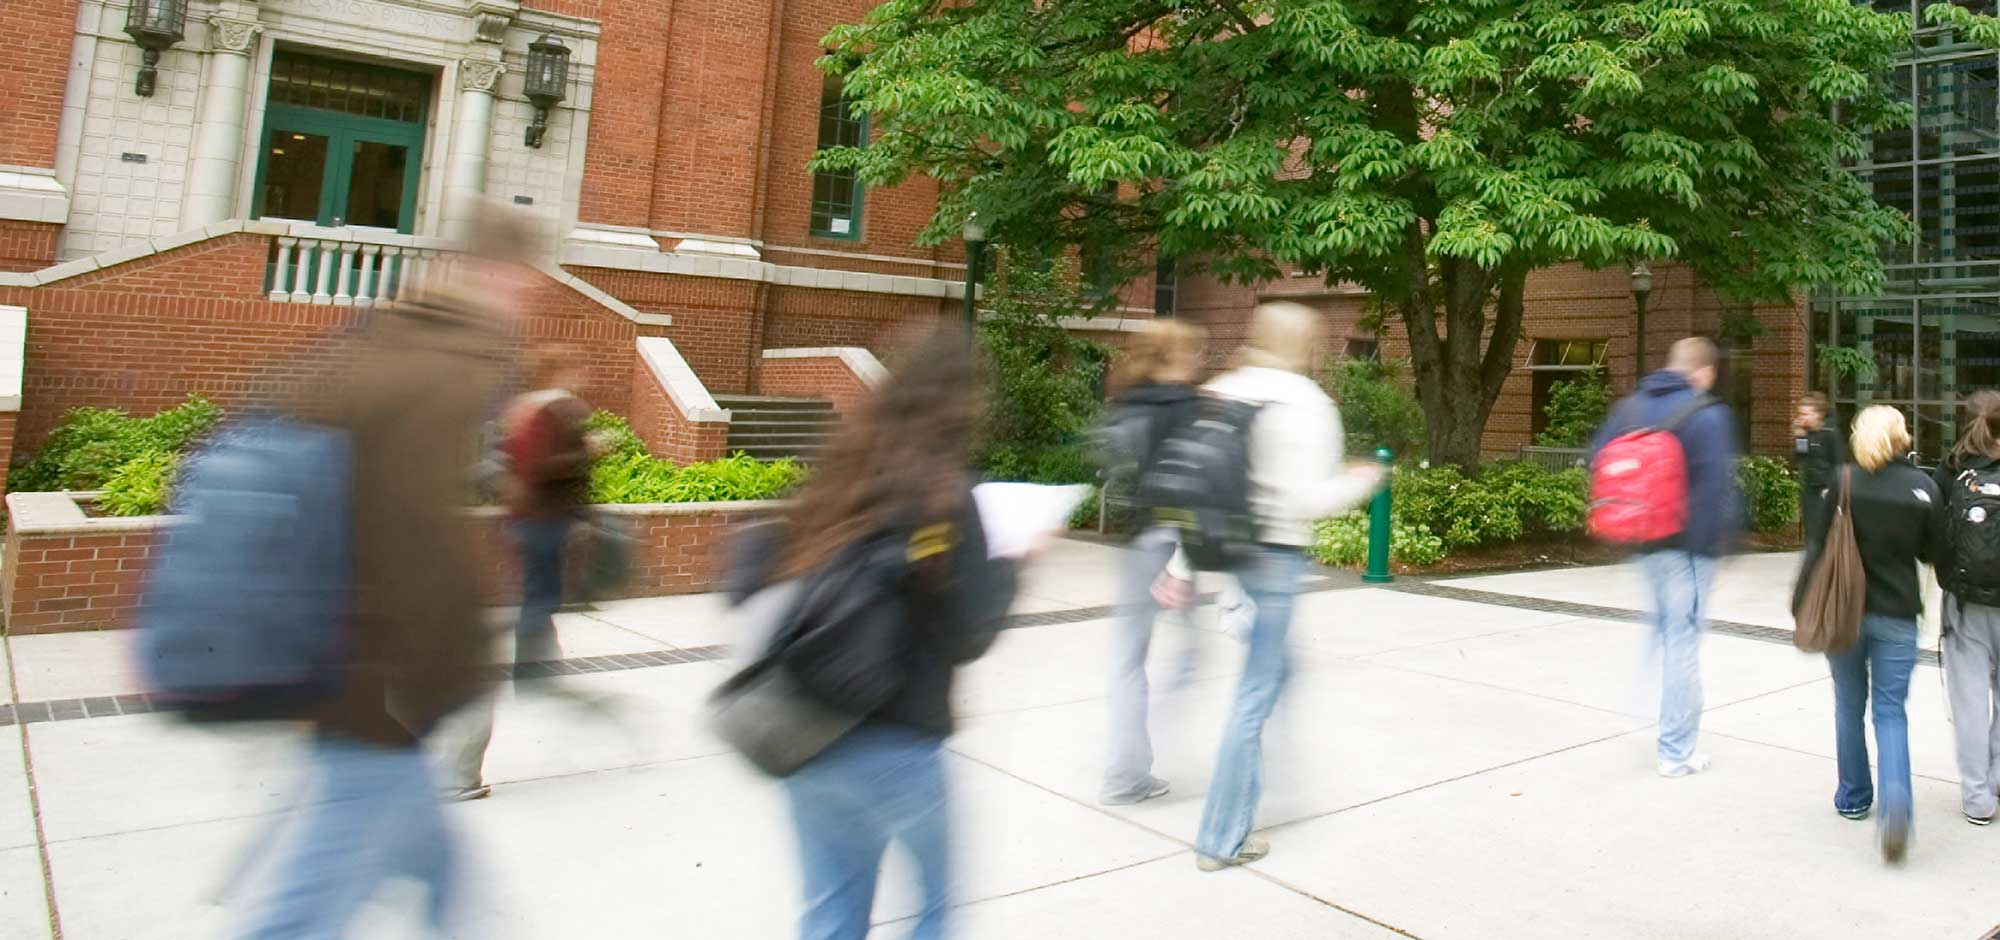 Students walking into the Lillis building